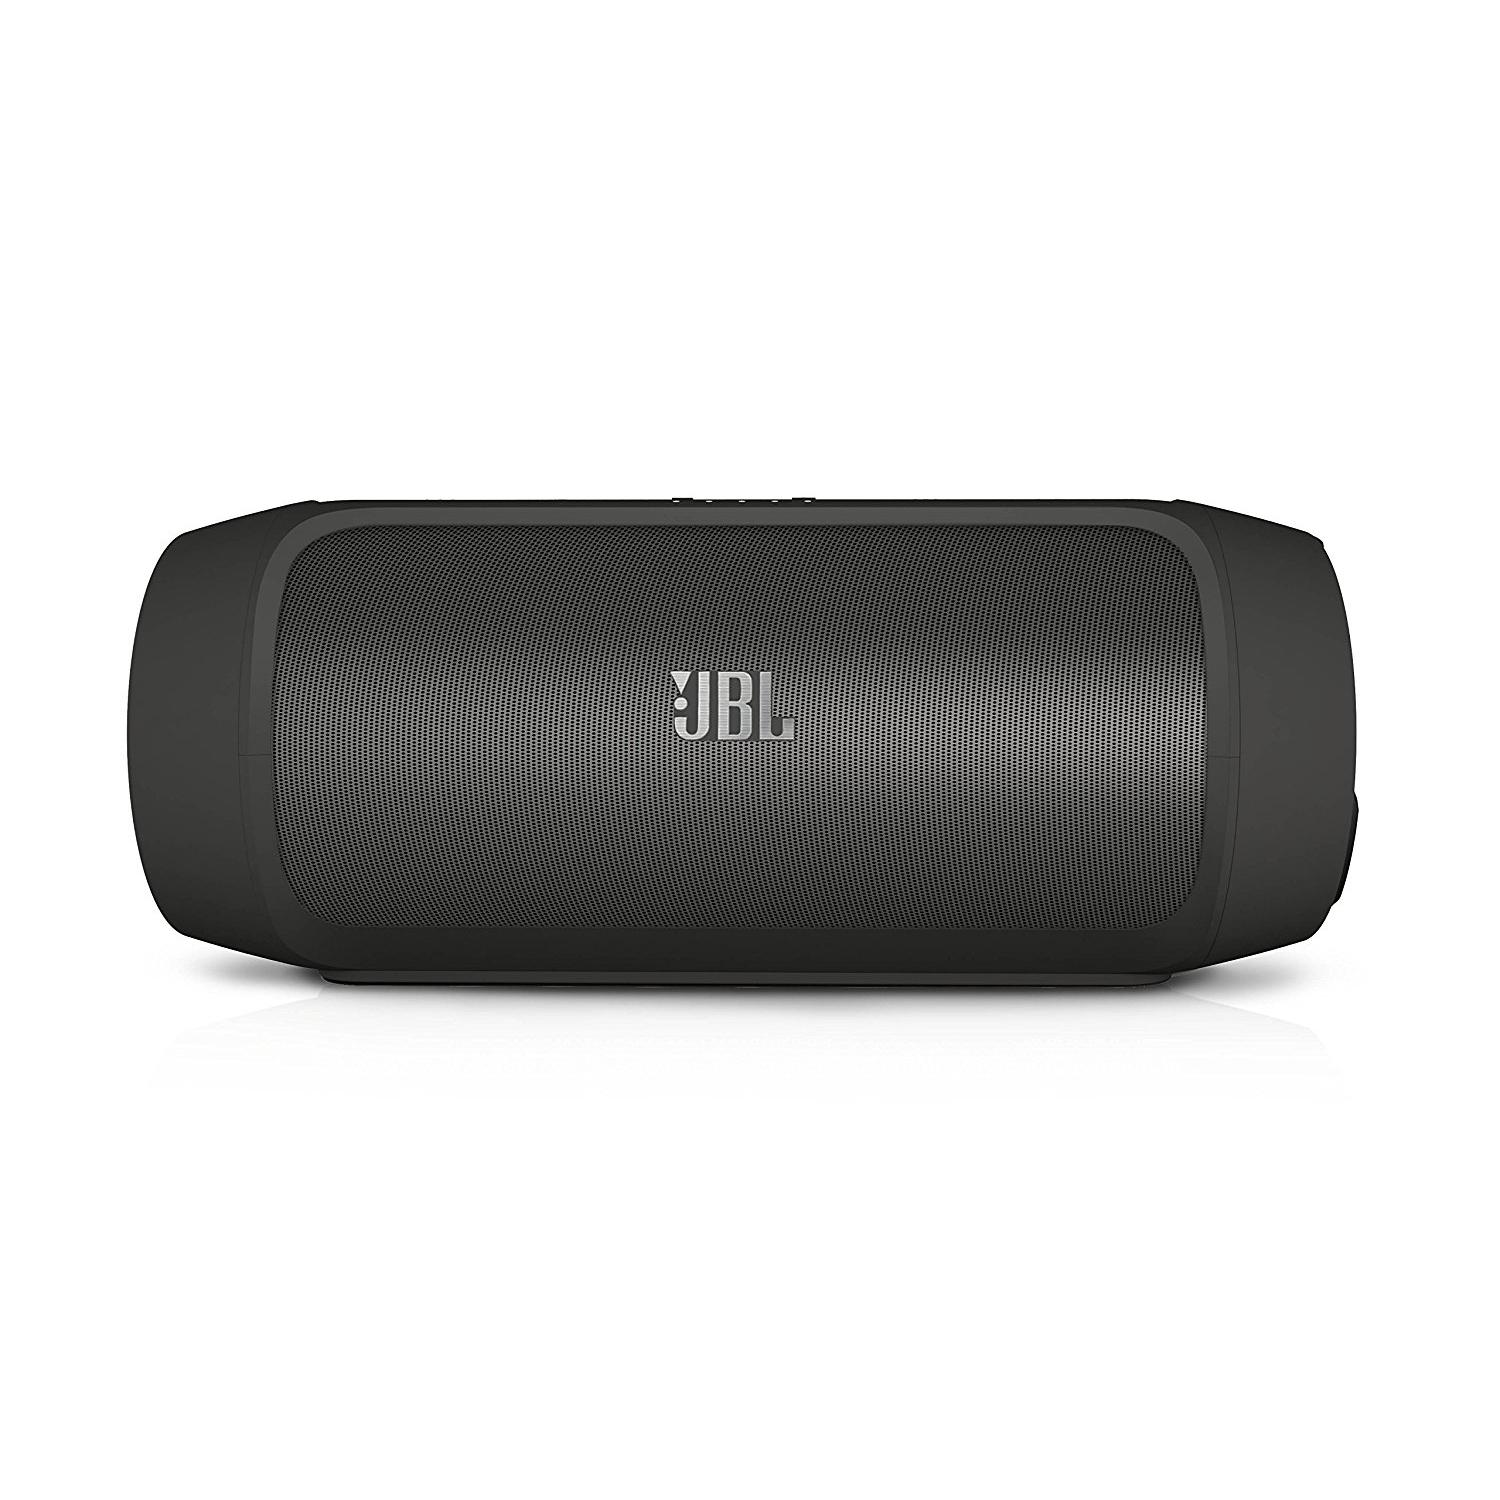 Jbl Charge 2 Jbl Charge 2 43 Splashproof Portable Bluetooth Speaker Black